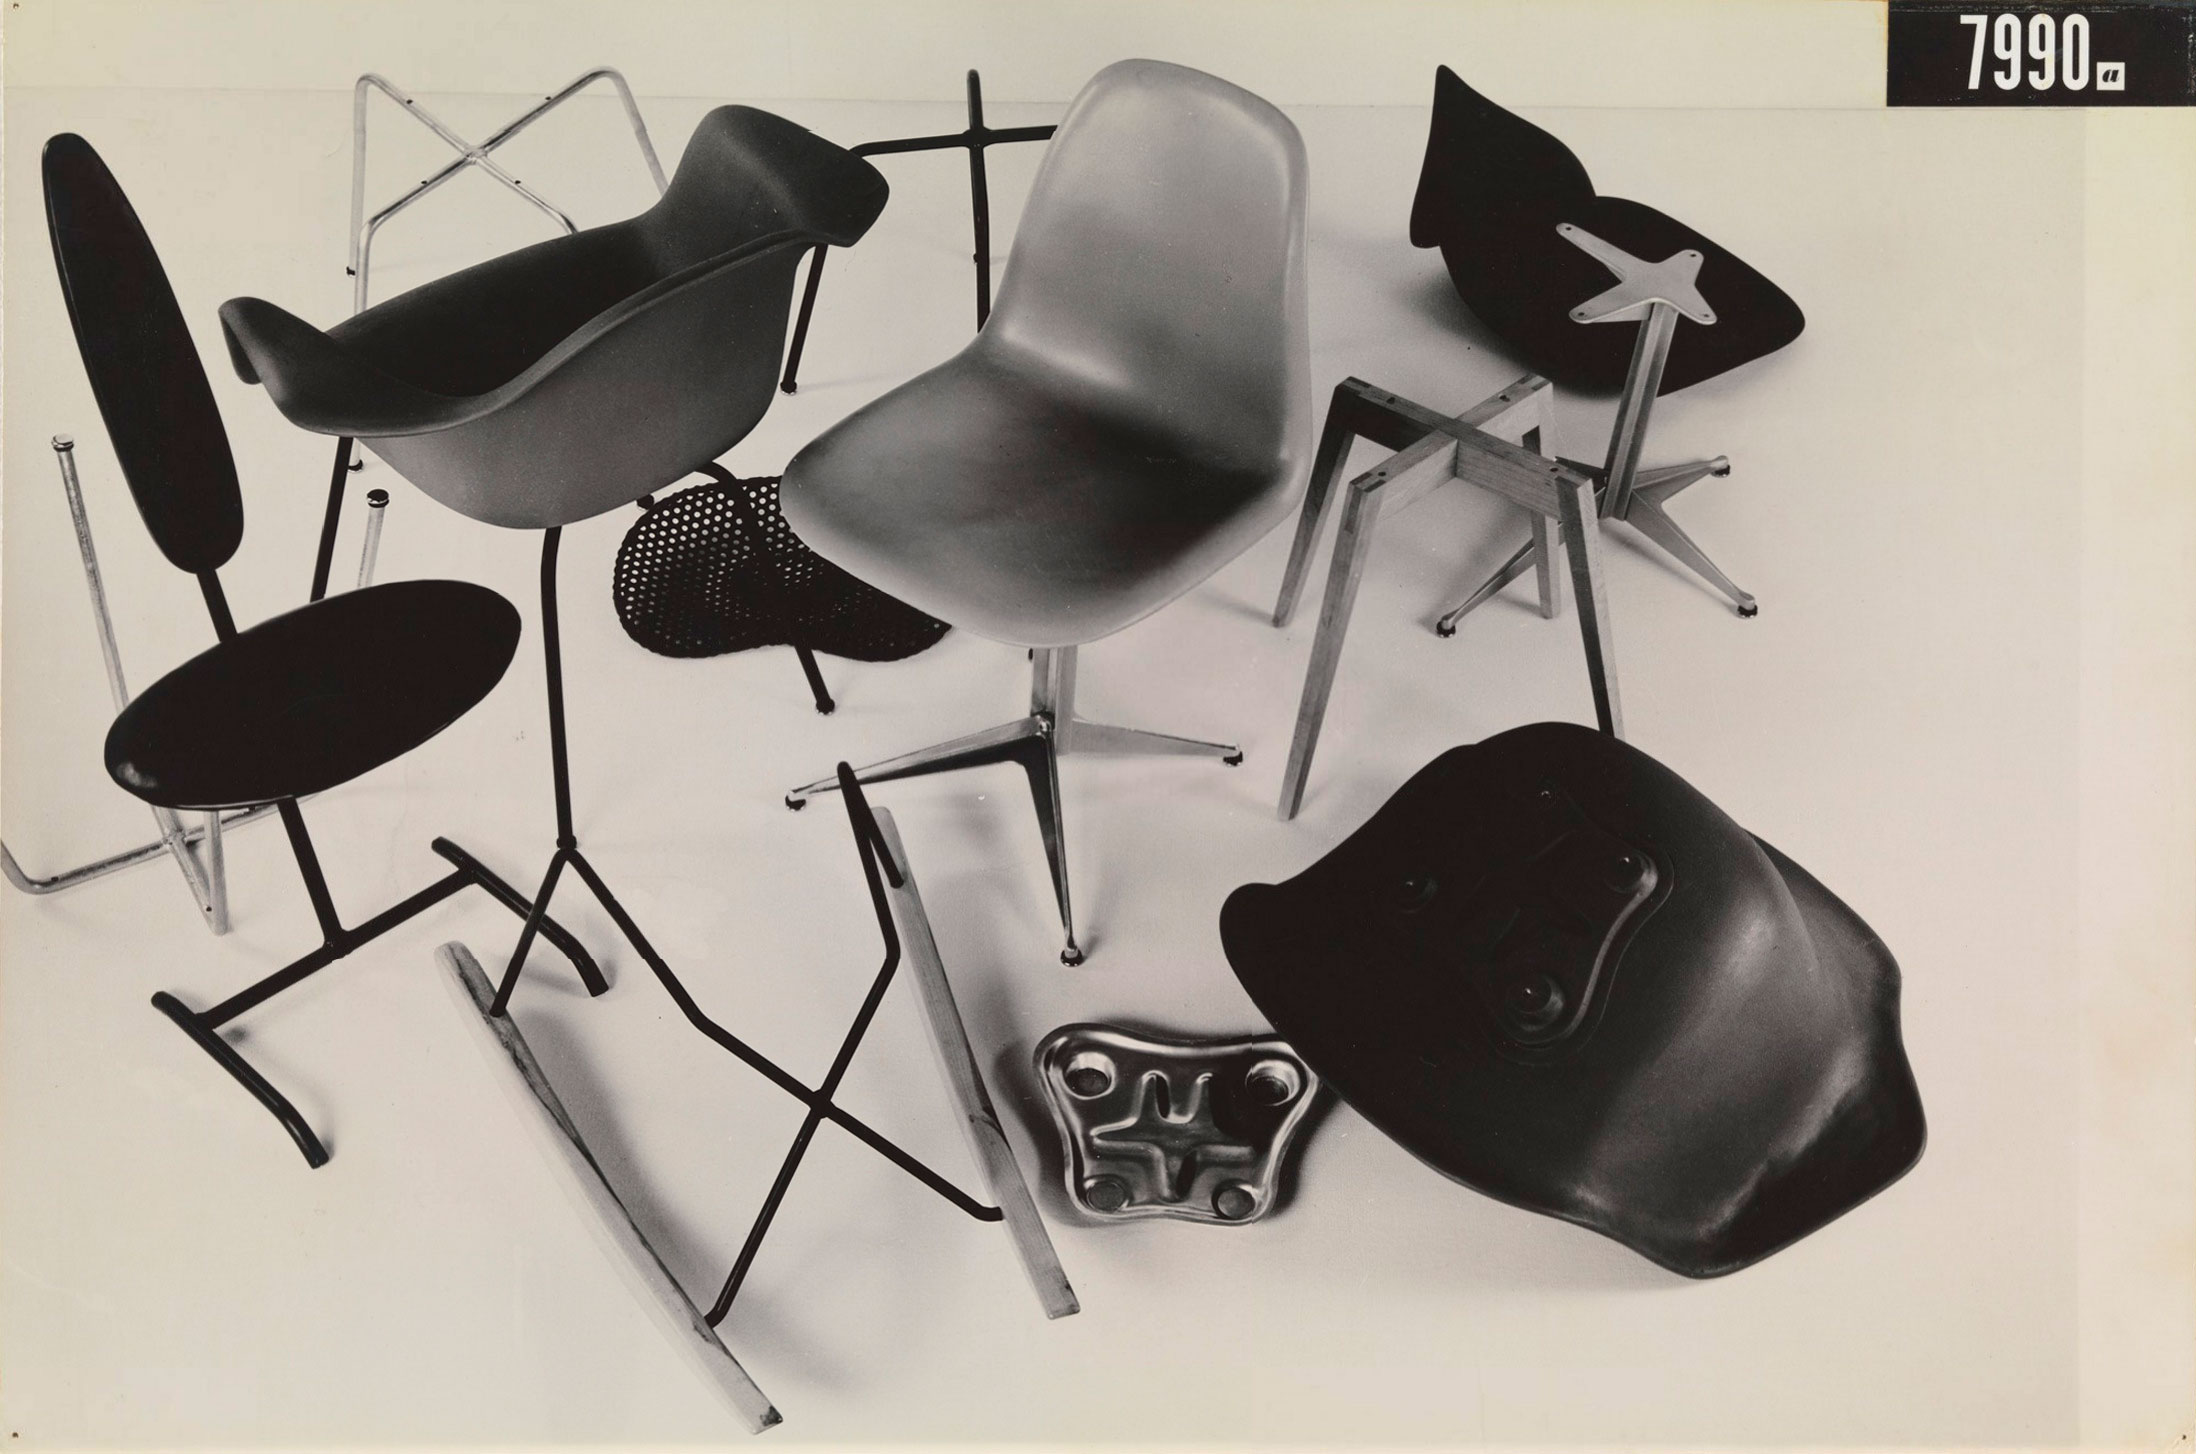 eames-MoMA International Competition for Low-Cost Furniture Design